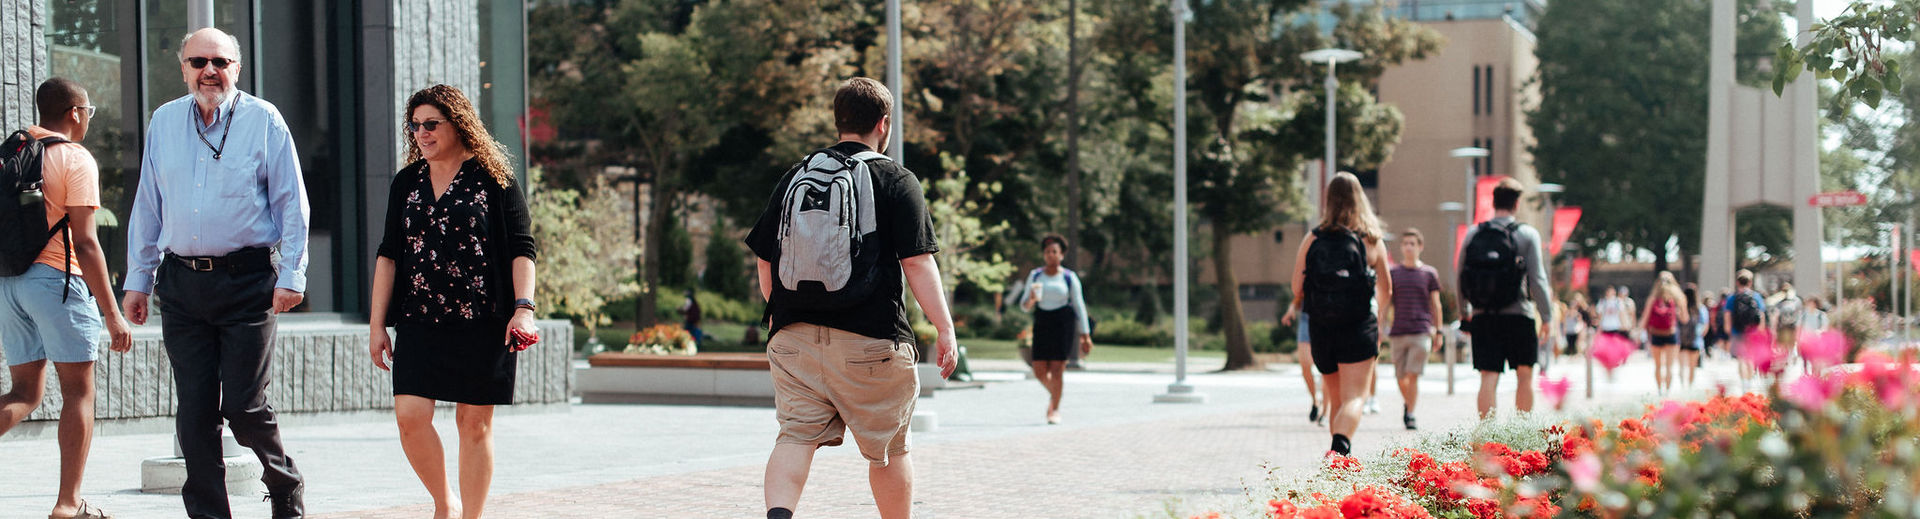 Temple students walk across Polett Walk between classes on Main Campus.